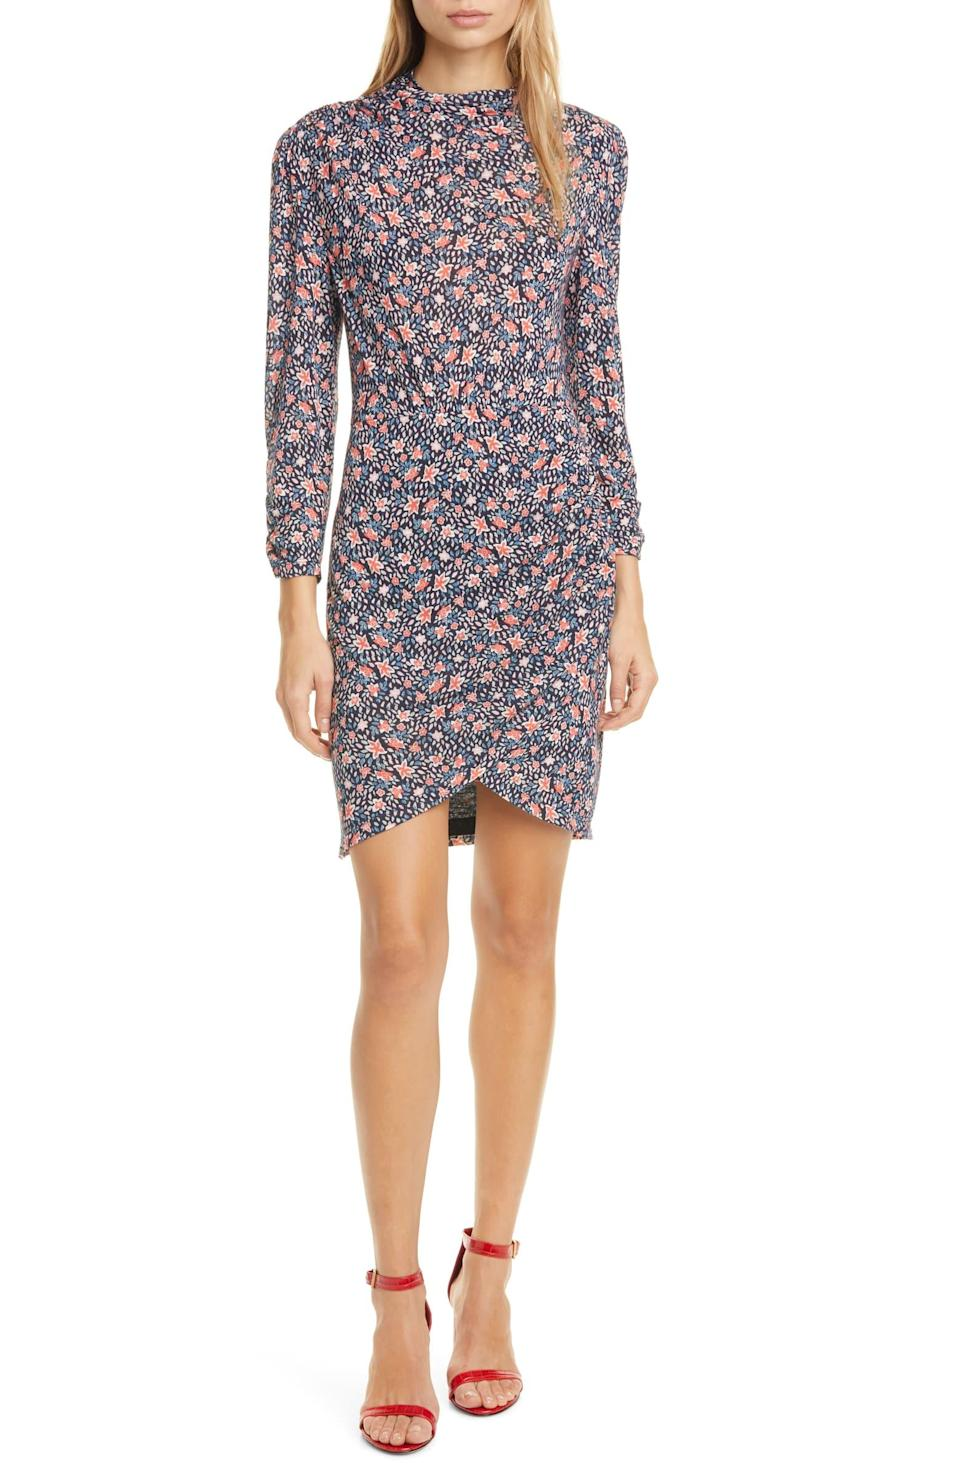 Rebecca Taylor Twilight Ditsy Floral Jersey Dress. Image via Nordstrom.